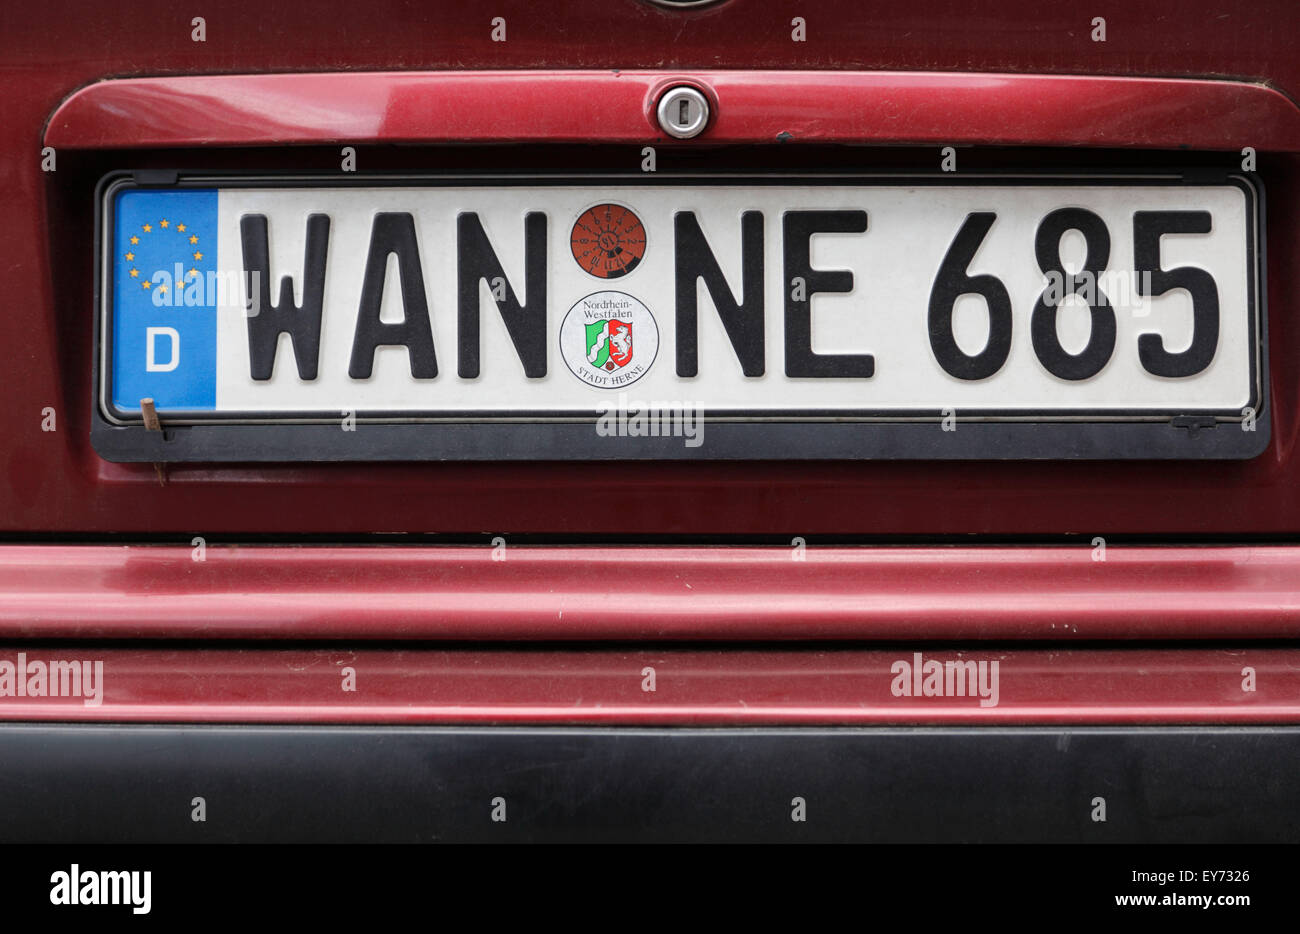 traffic, road traffic, car registration number at a car from Wanne, Germany, North Rhine-Westphalia, Herne, Herne - Stock Image